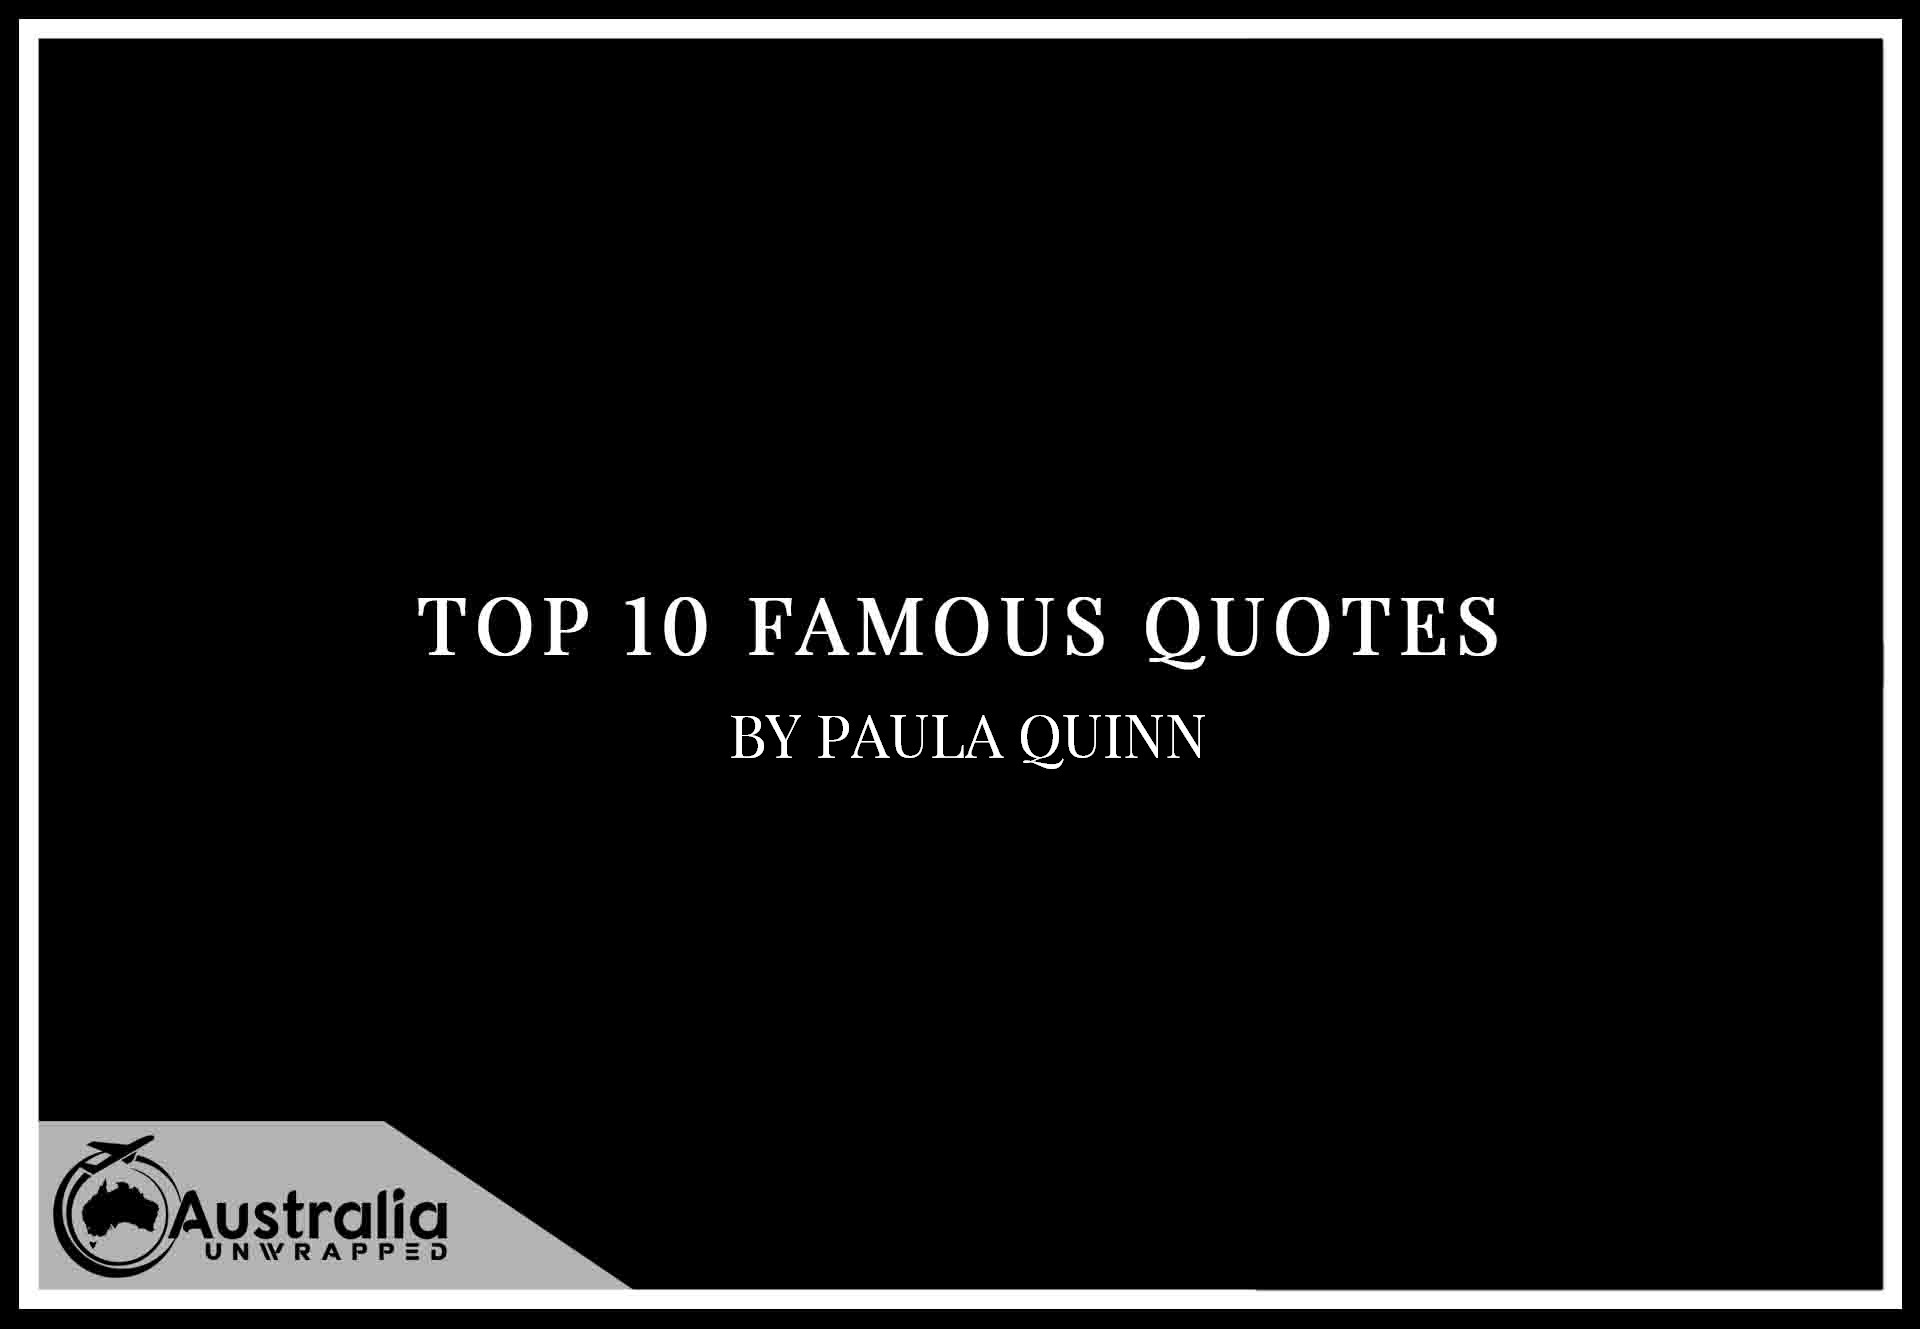 Top 10 Famous Quotes by Author Paula Quinn